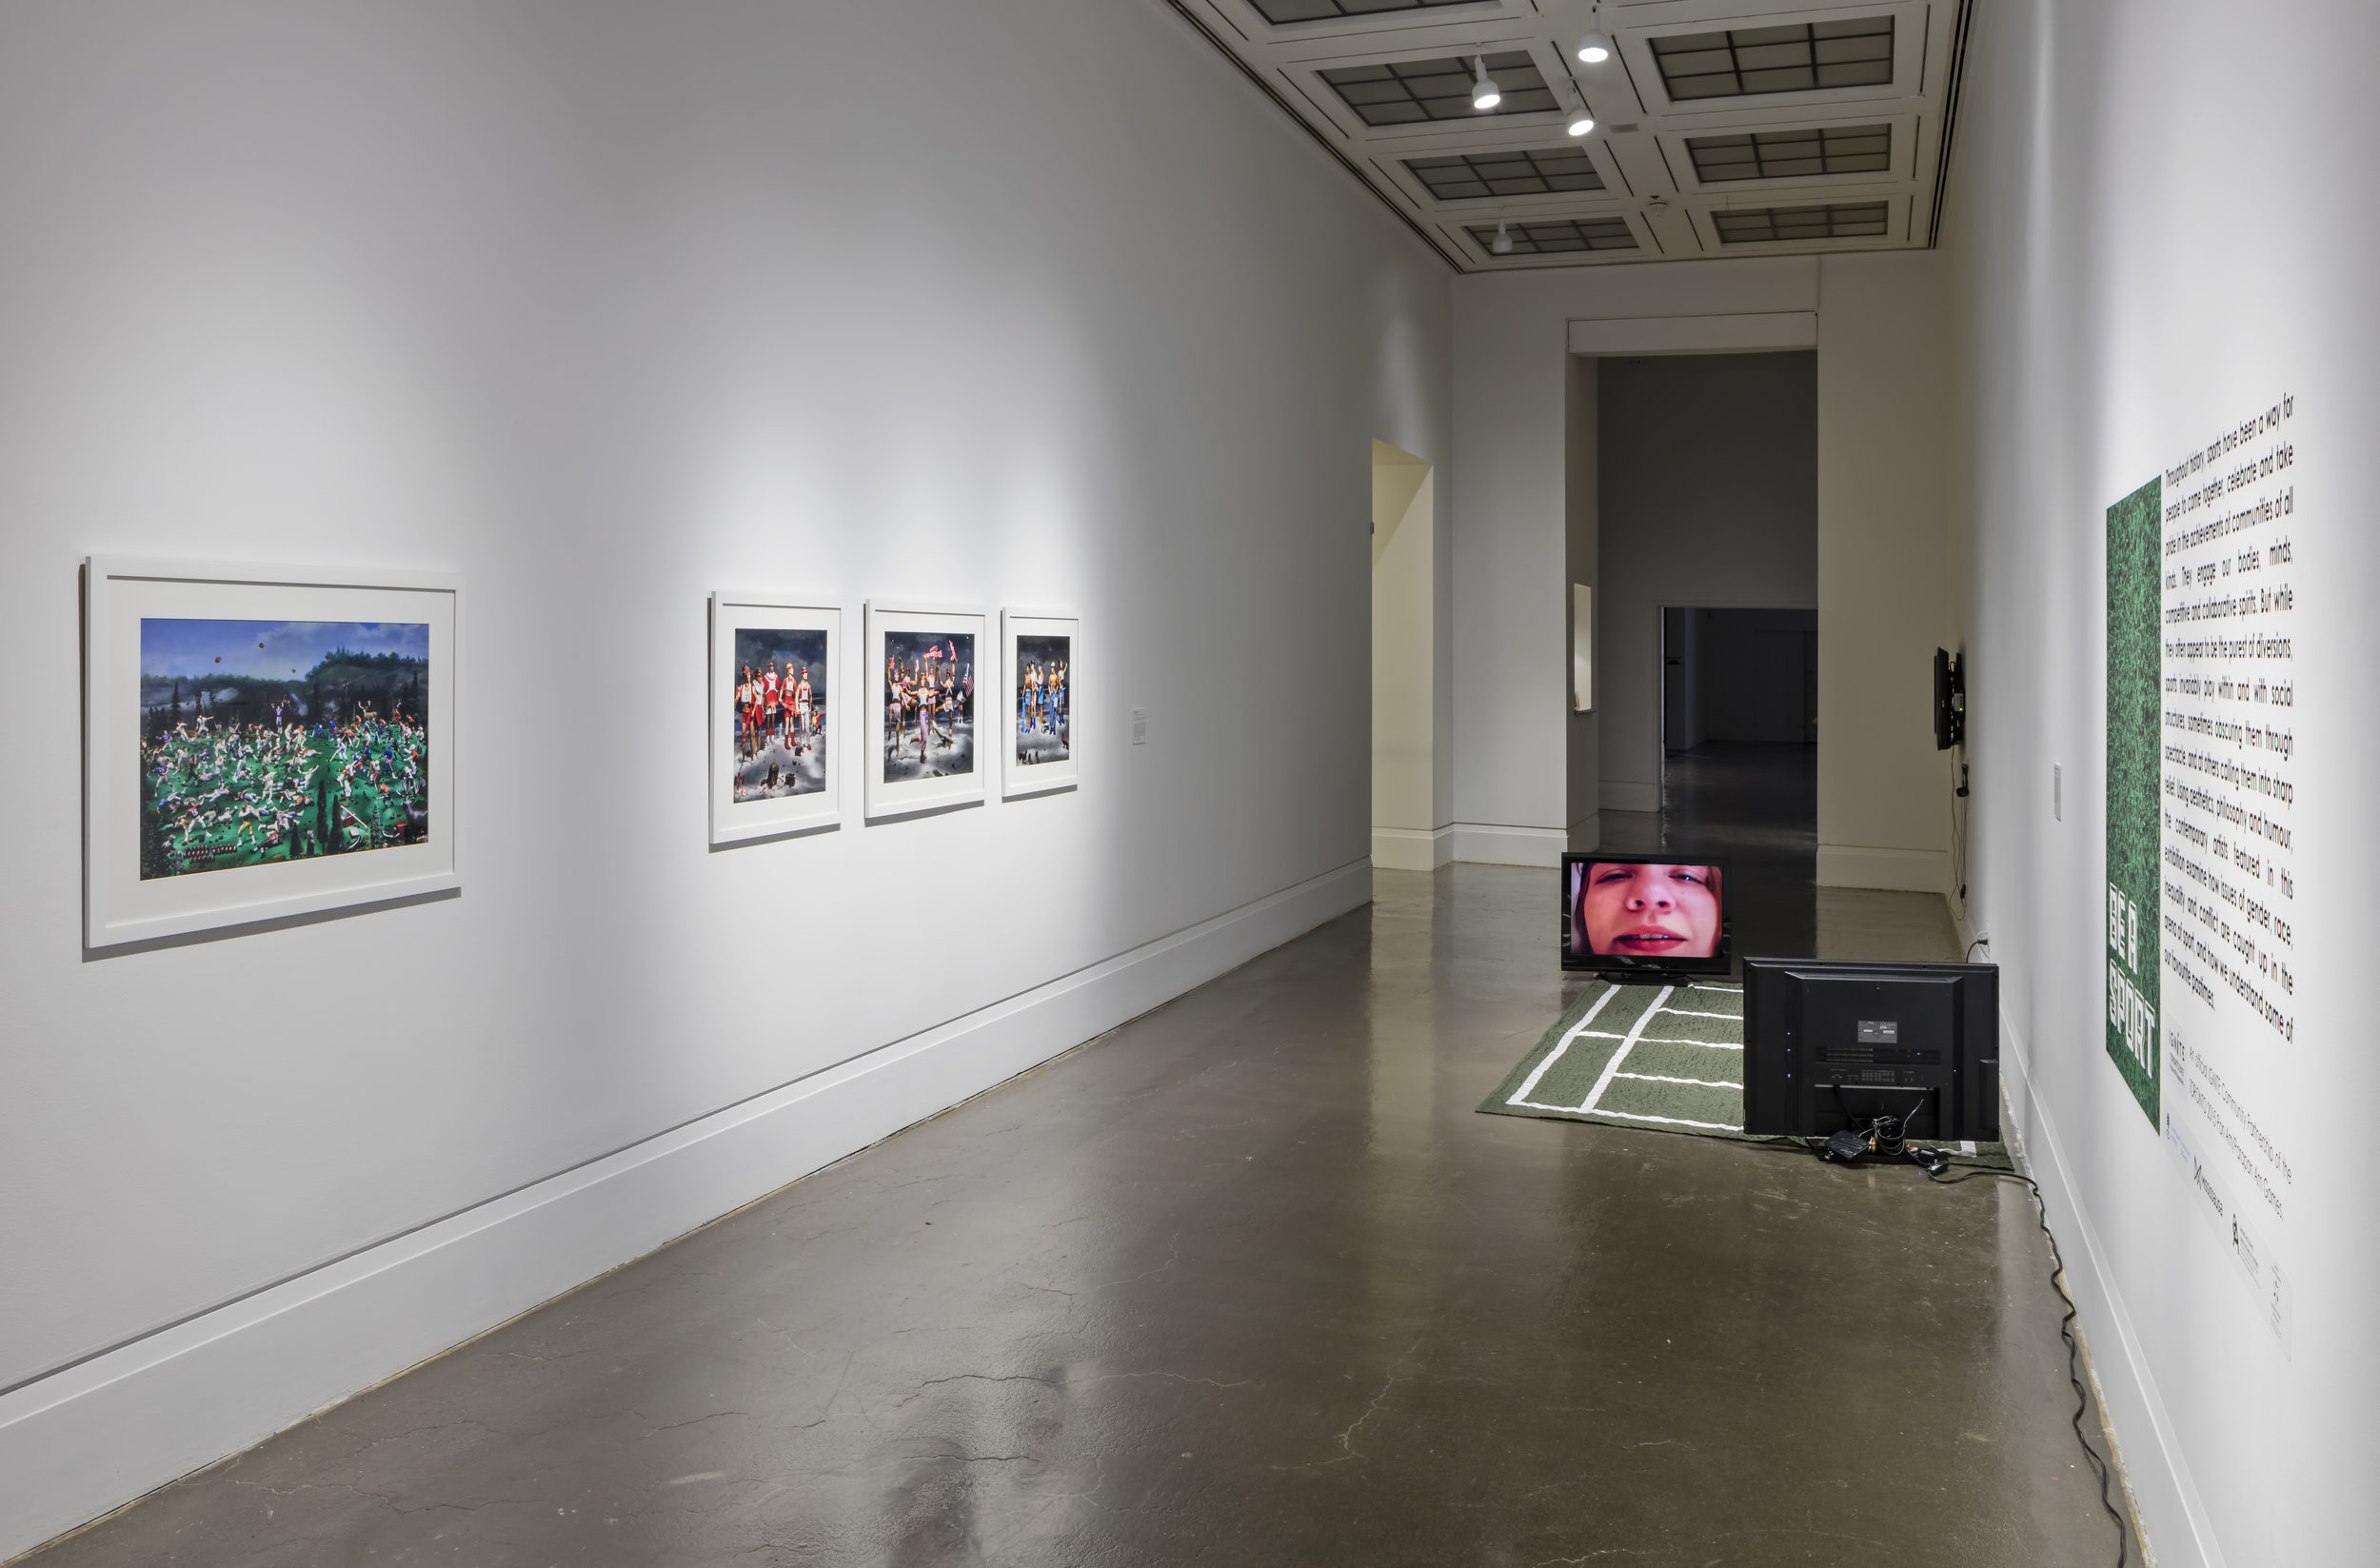 Be A Sport , Robert Freeman Gallery, Art Gallery of Mississauga. Left: Diana Thorneycroft,  The Battle of Queenston Heights... , 2013,  NRA Sponsored Rhythmic Gymnastics Competition... , 2012. C-prints. Right: Weber & Schneider,  Wimbledom , 2000, Textile sculpture, two-channel video. Photo by Toni Hafkenscheid.